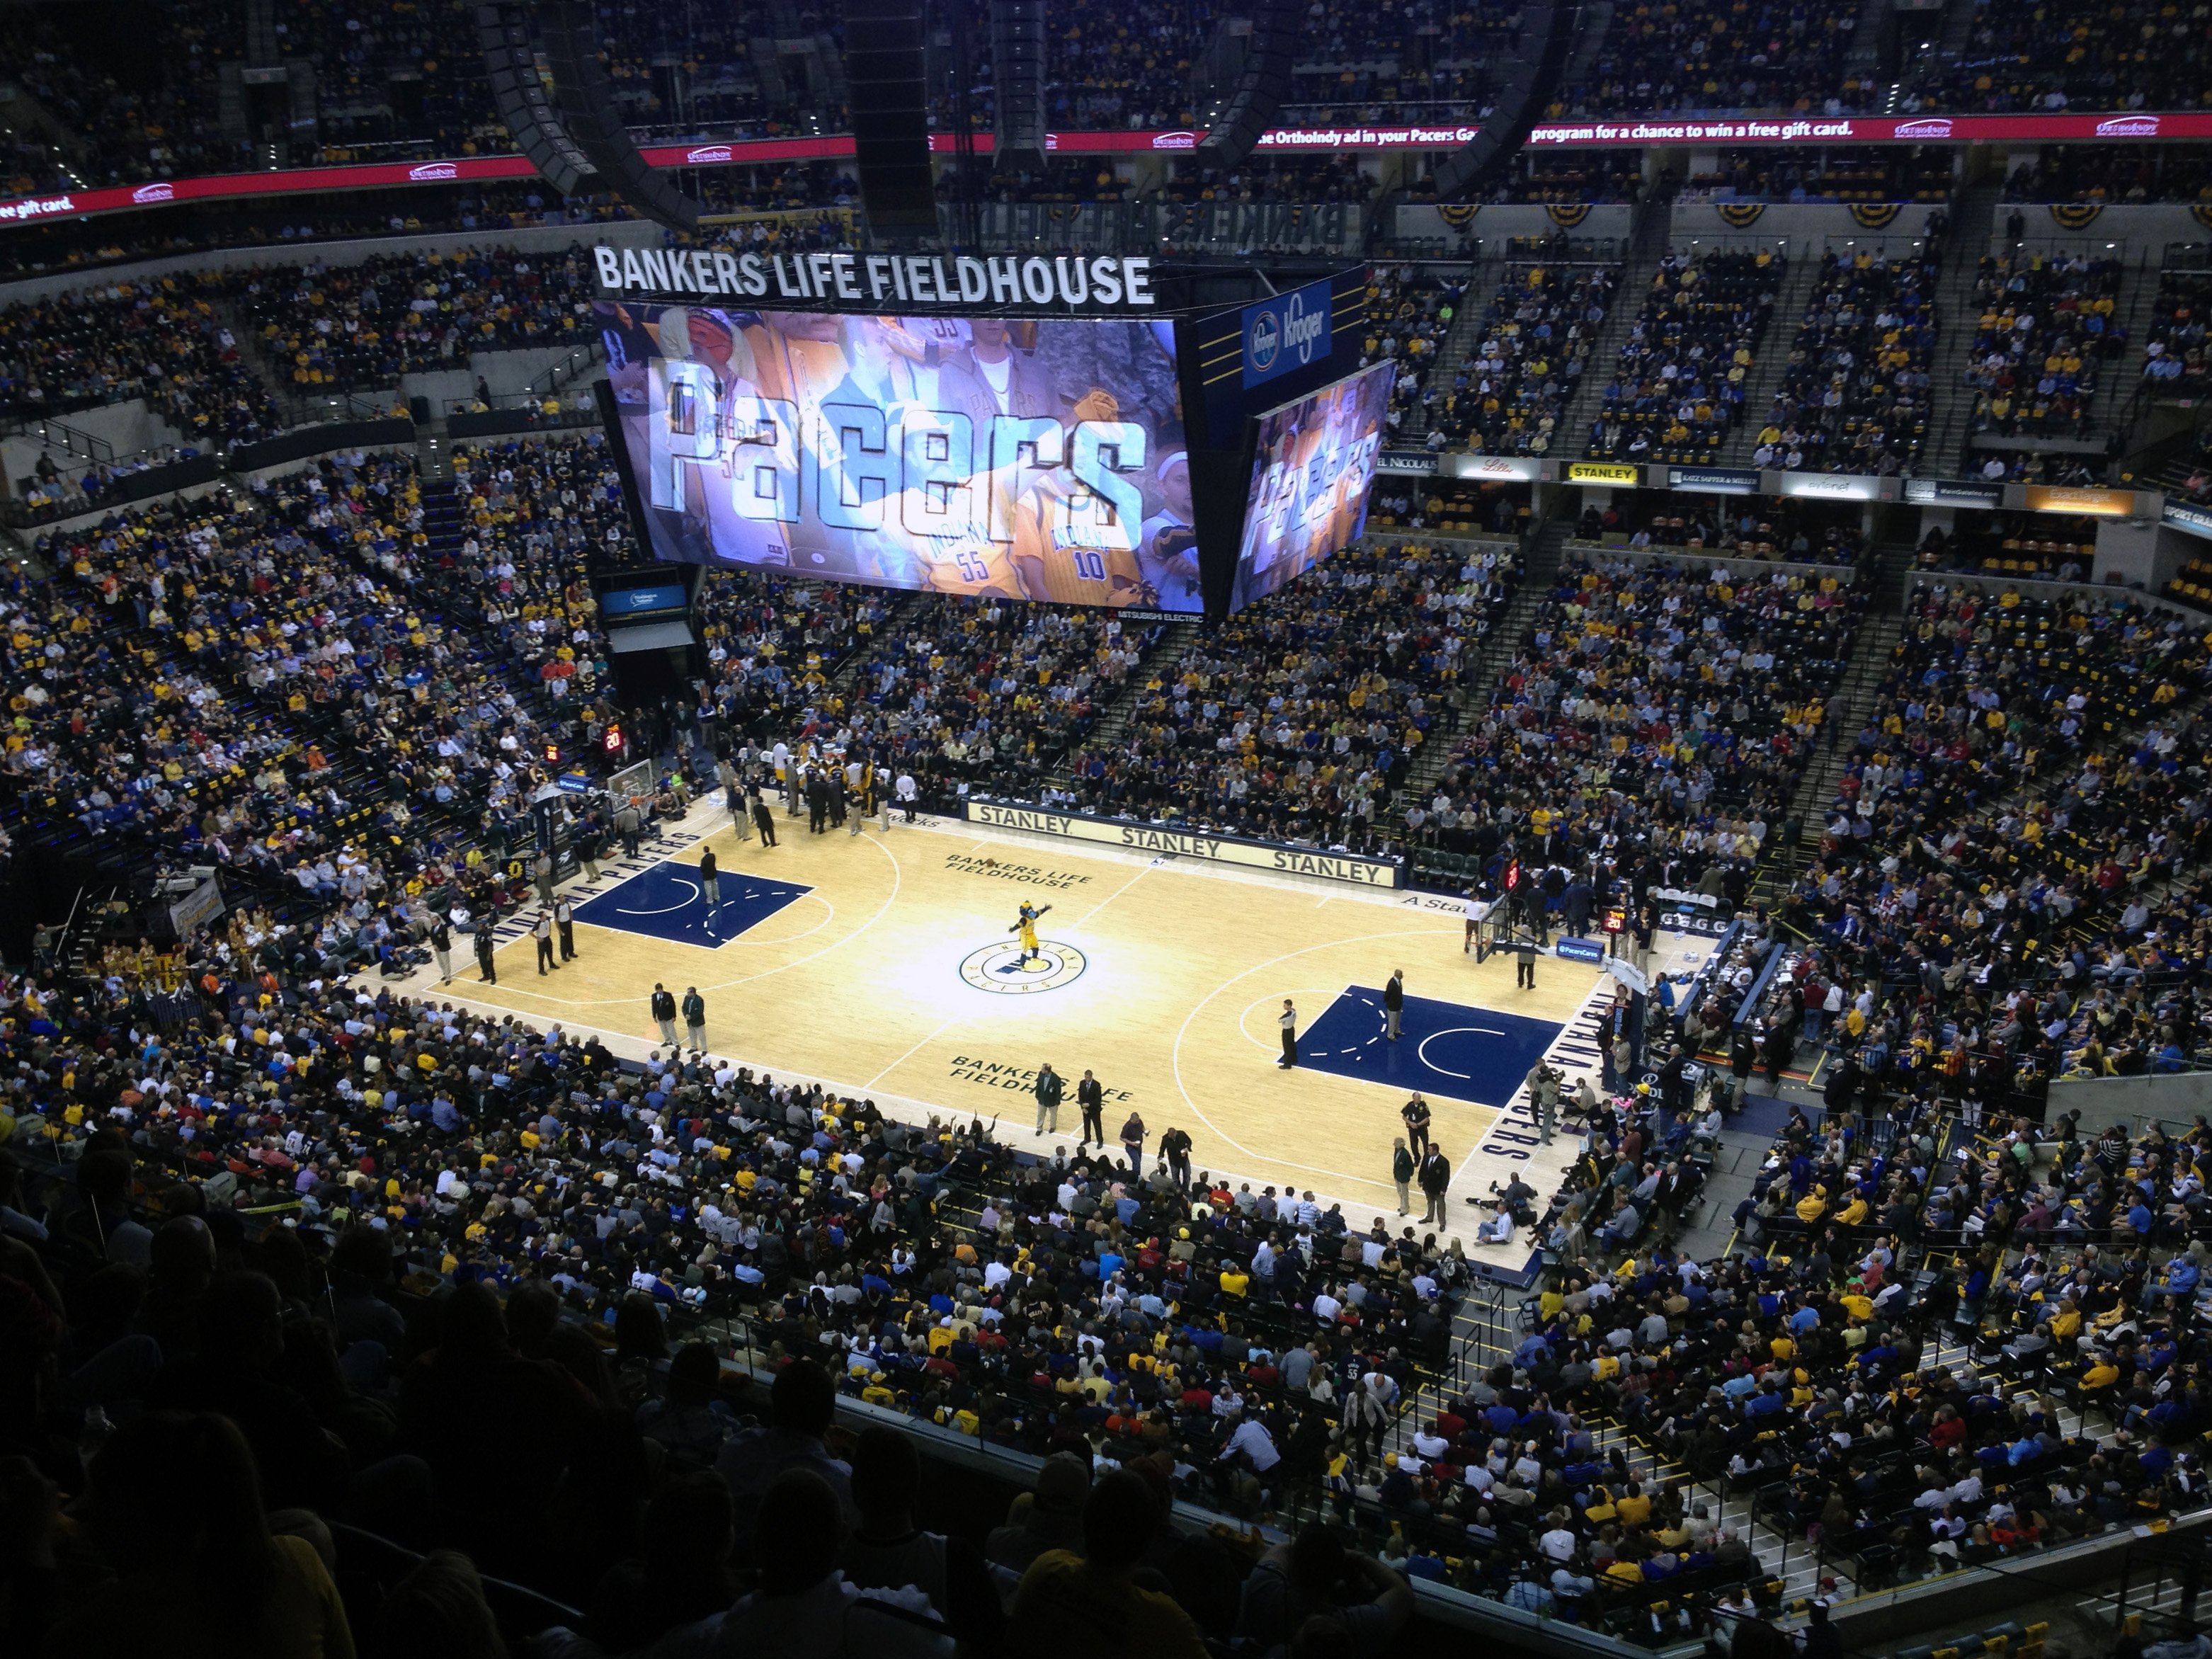 File:Bankers Life Fieldhouse.JPG - Wikimedia Commons